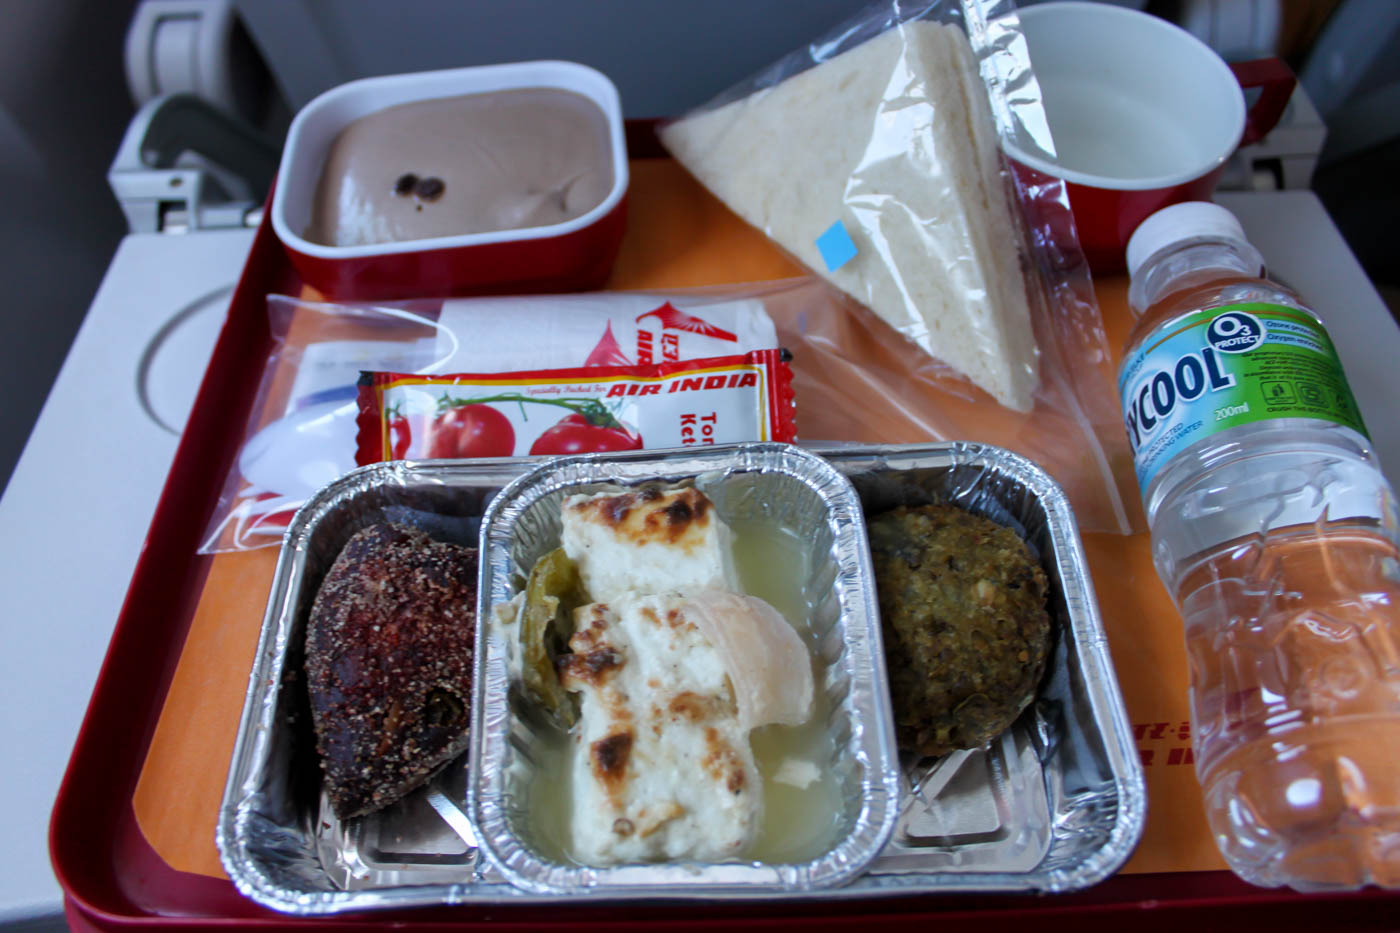 Air India Hot Snack